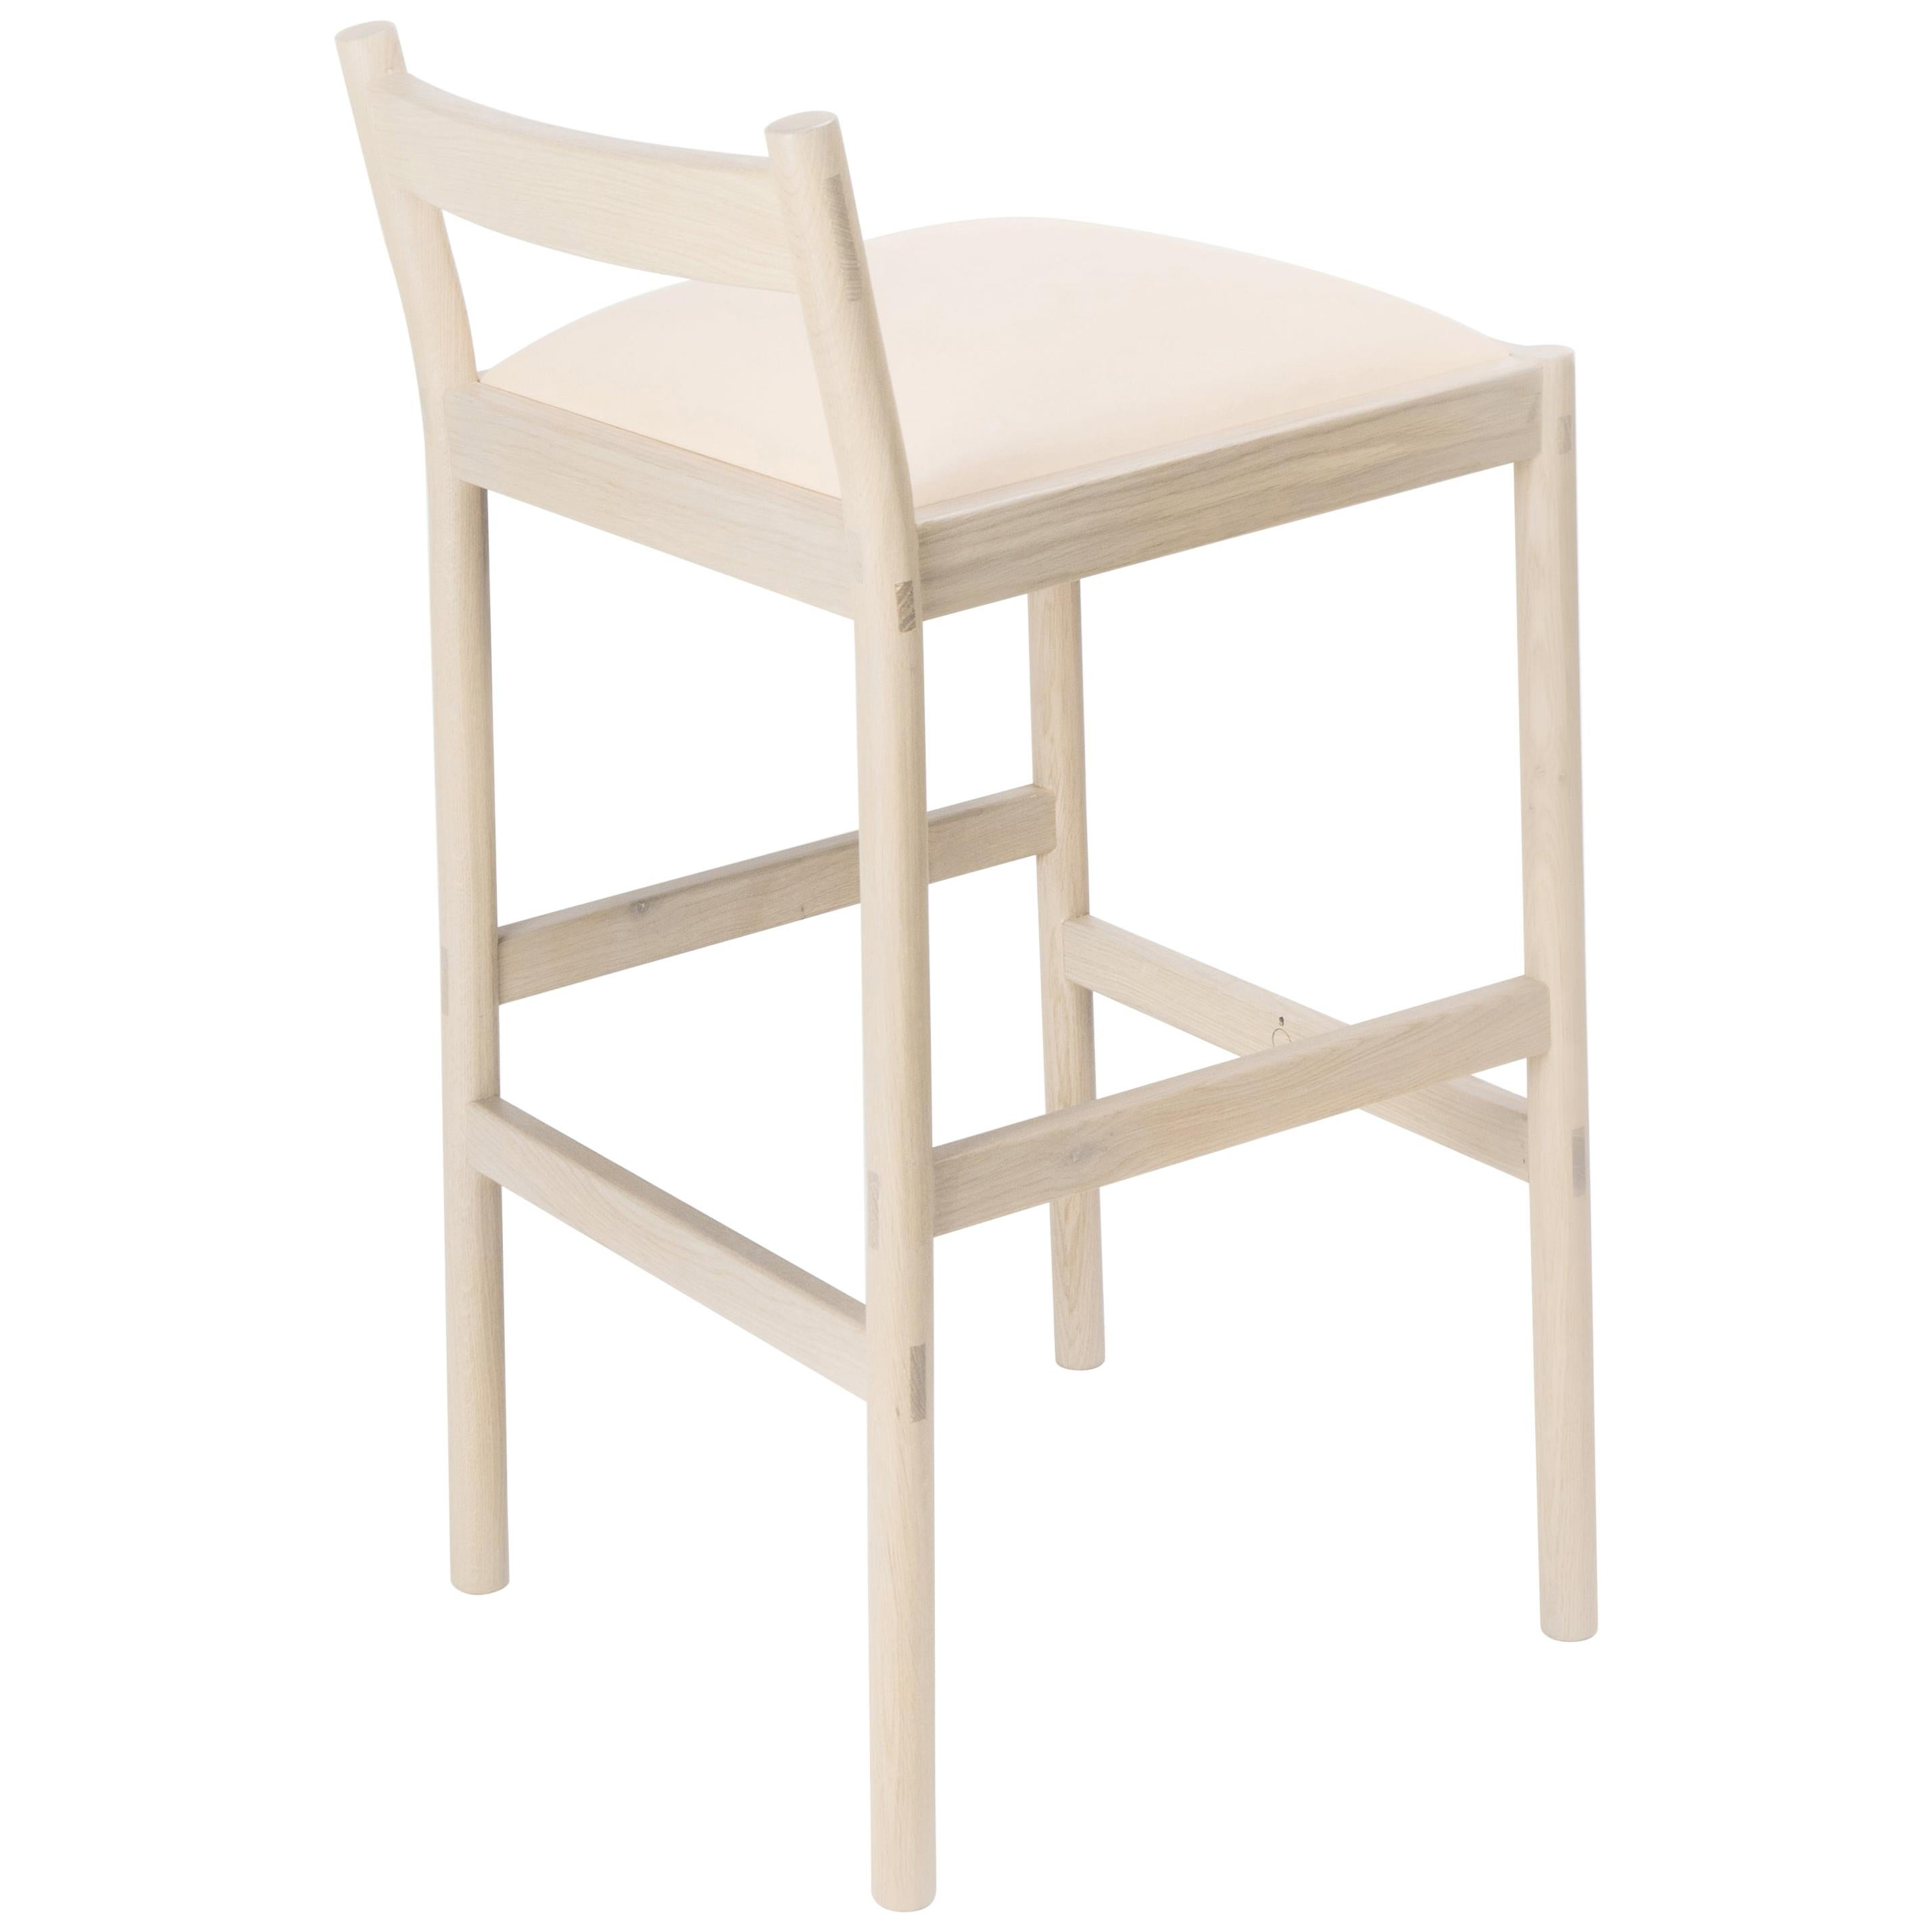 Carob Bar Stool by Sun at Six, Nude Minimalist Stool in Oak Wood and Leather